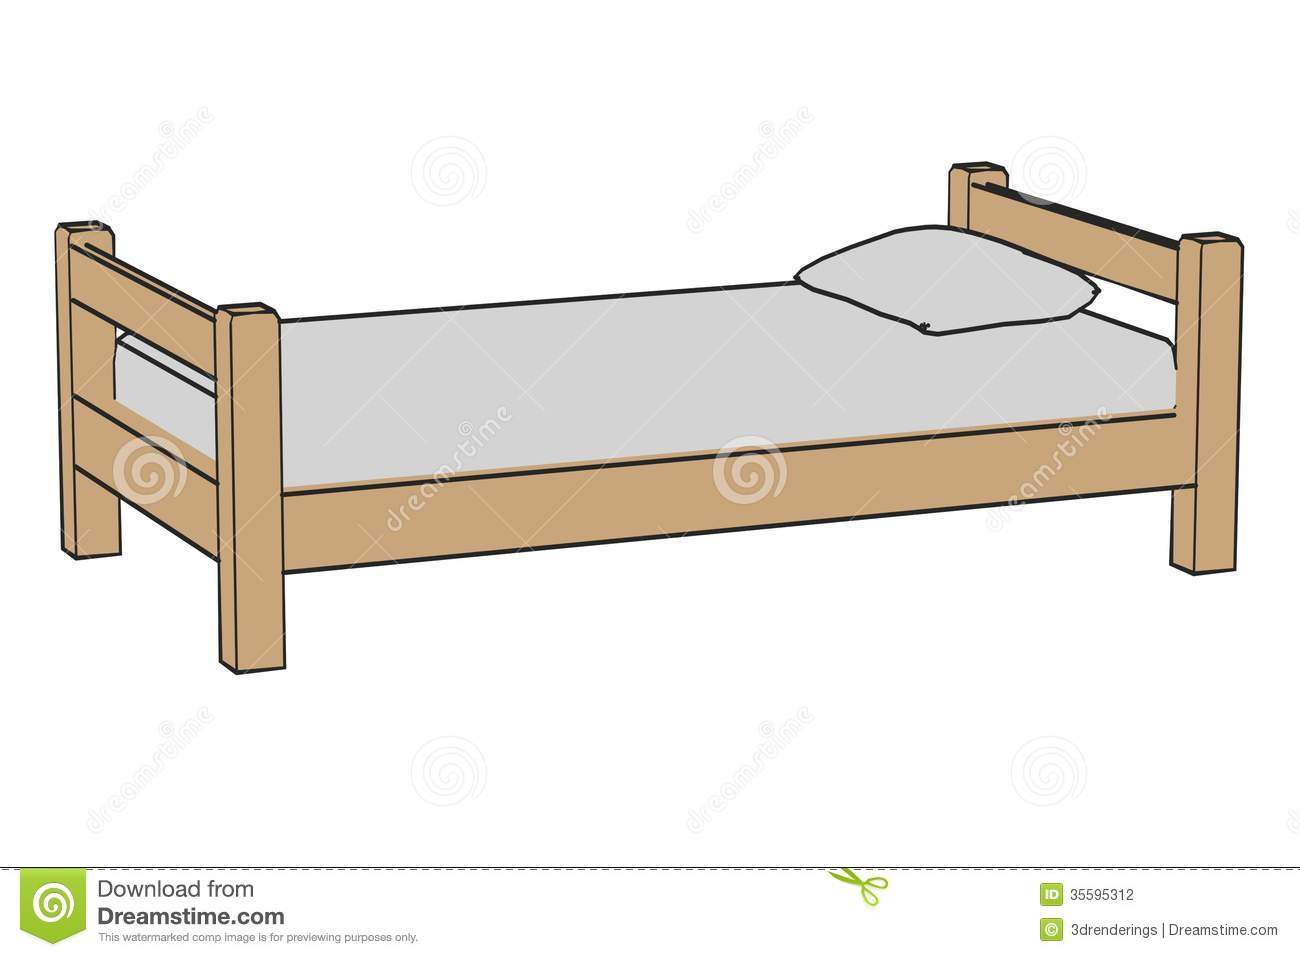 Get Rid Of Easy Cartoon Bed Once And For All Bangdodo